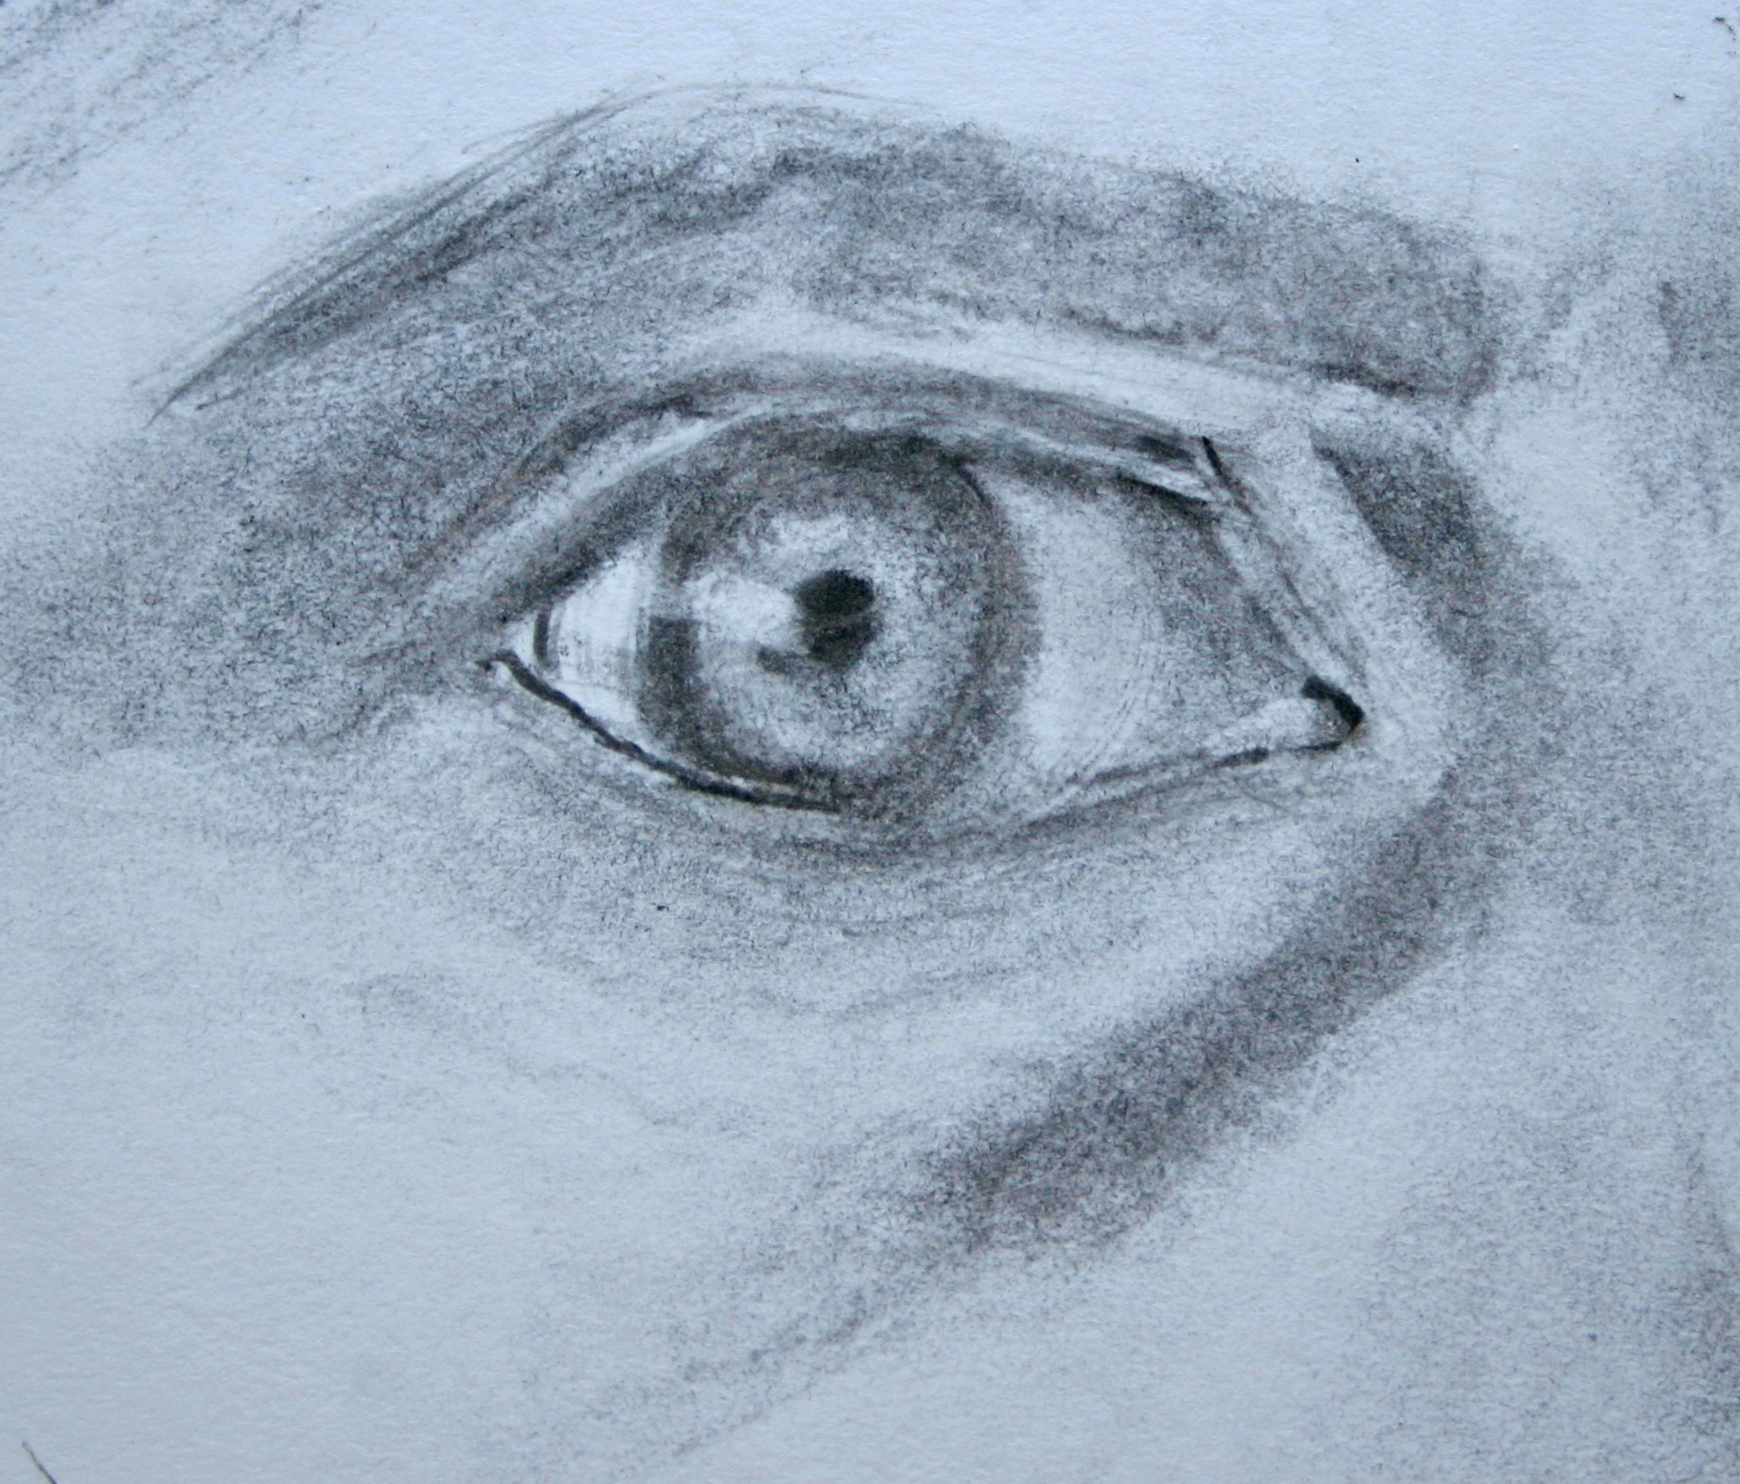 Study of the Eye, 2007